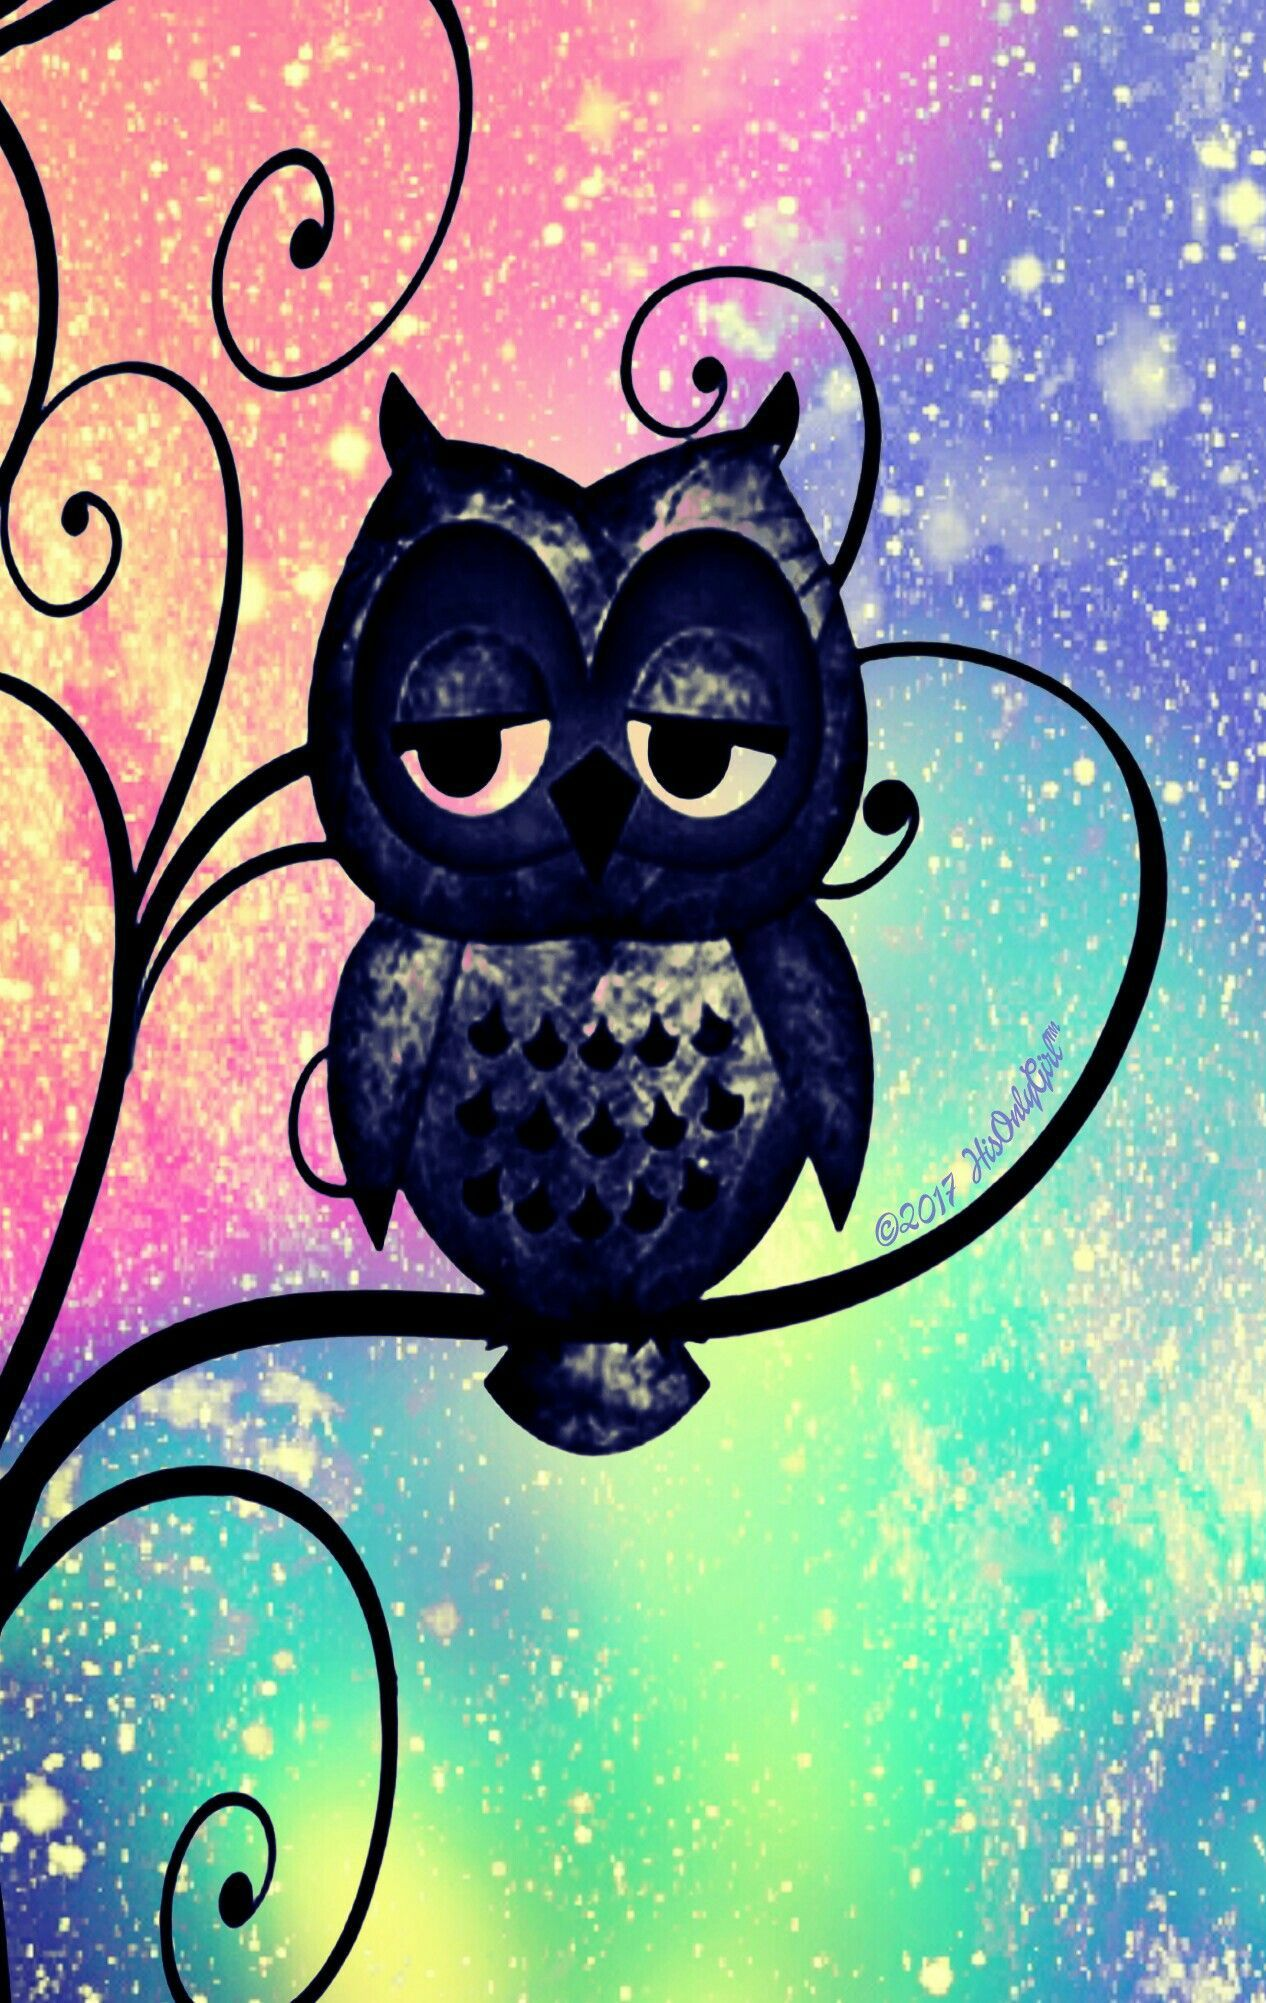 1266x2003 Rainbow owl galaxy iPhone/Android wallpaper I created for ...